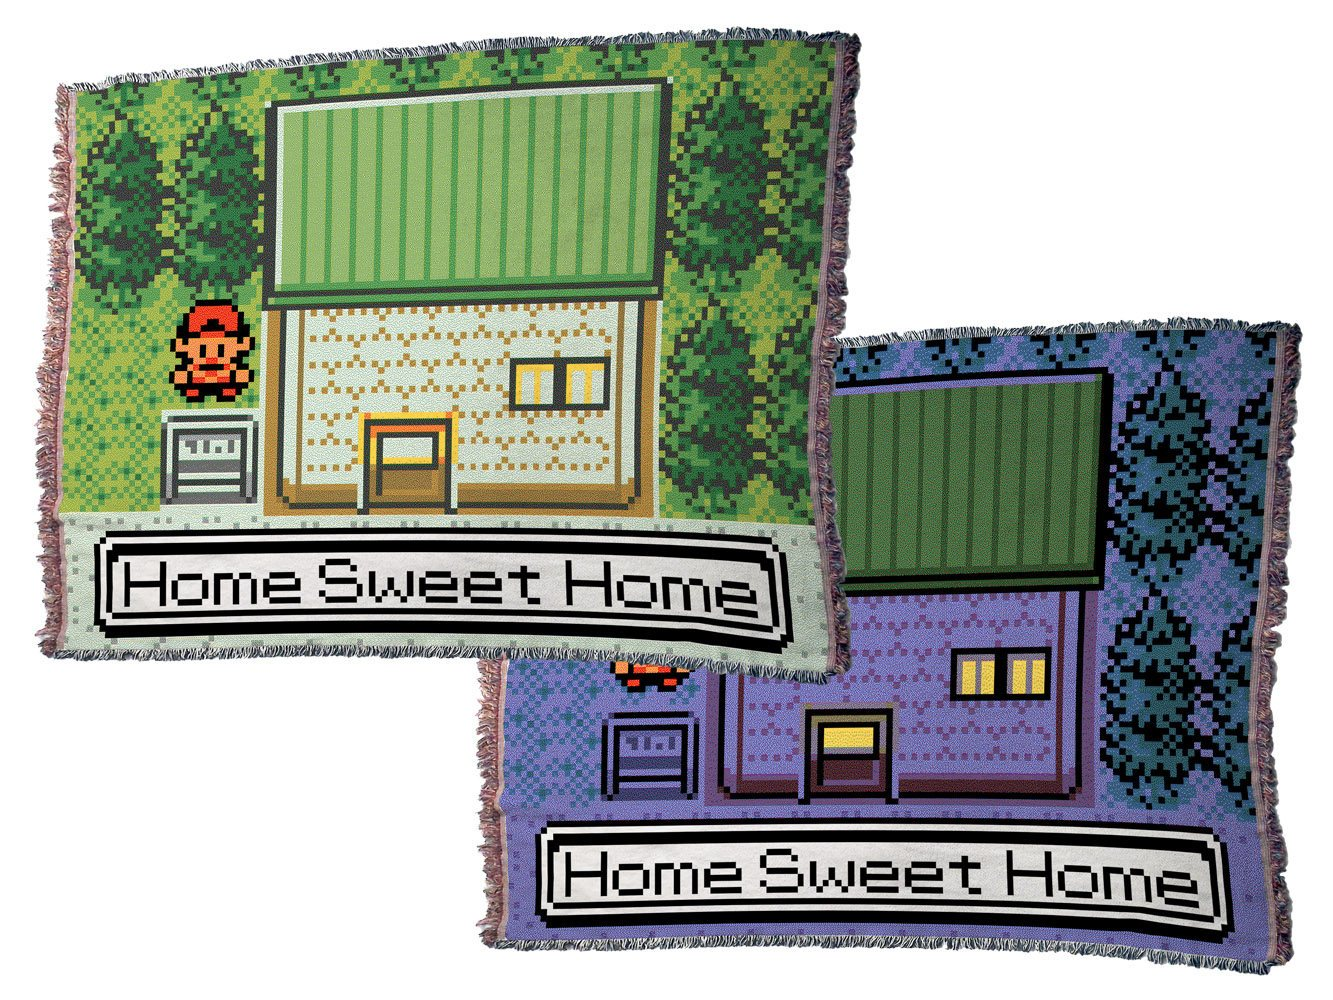 "Pokemon (Gen II), ""Home Sweet Home"" - 70"" x 54"" Jacquard Loom Woven Throw Blanket"